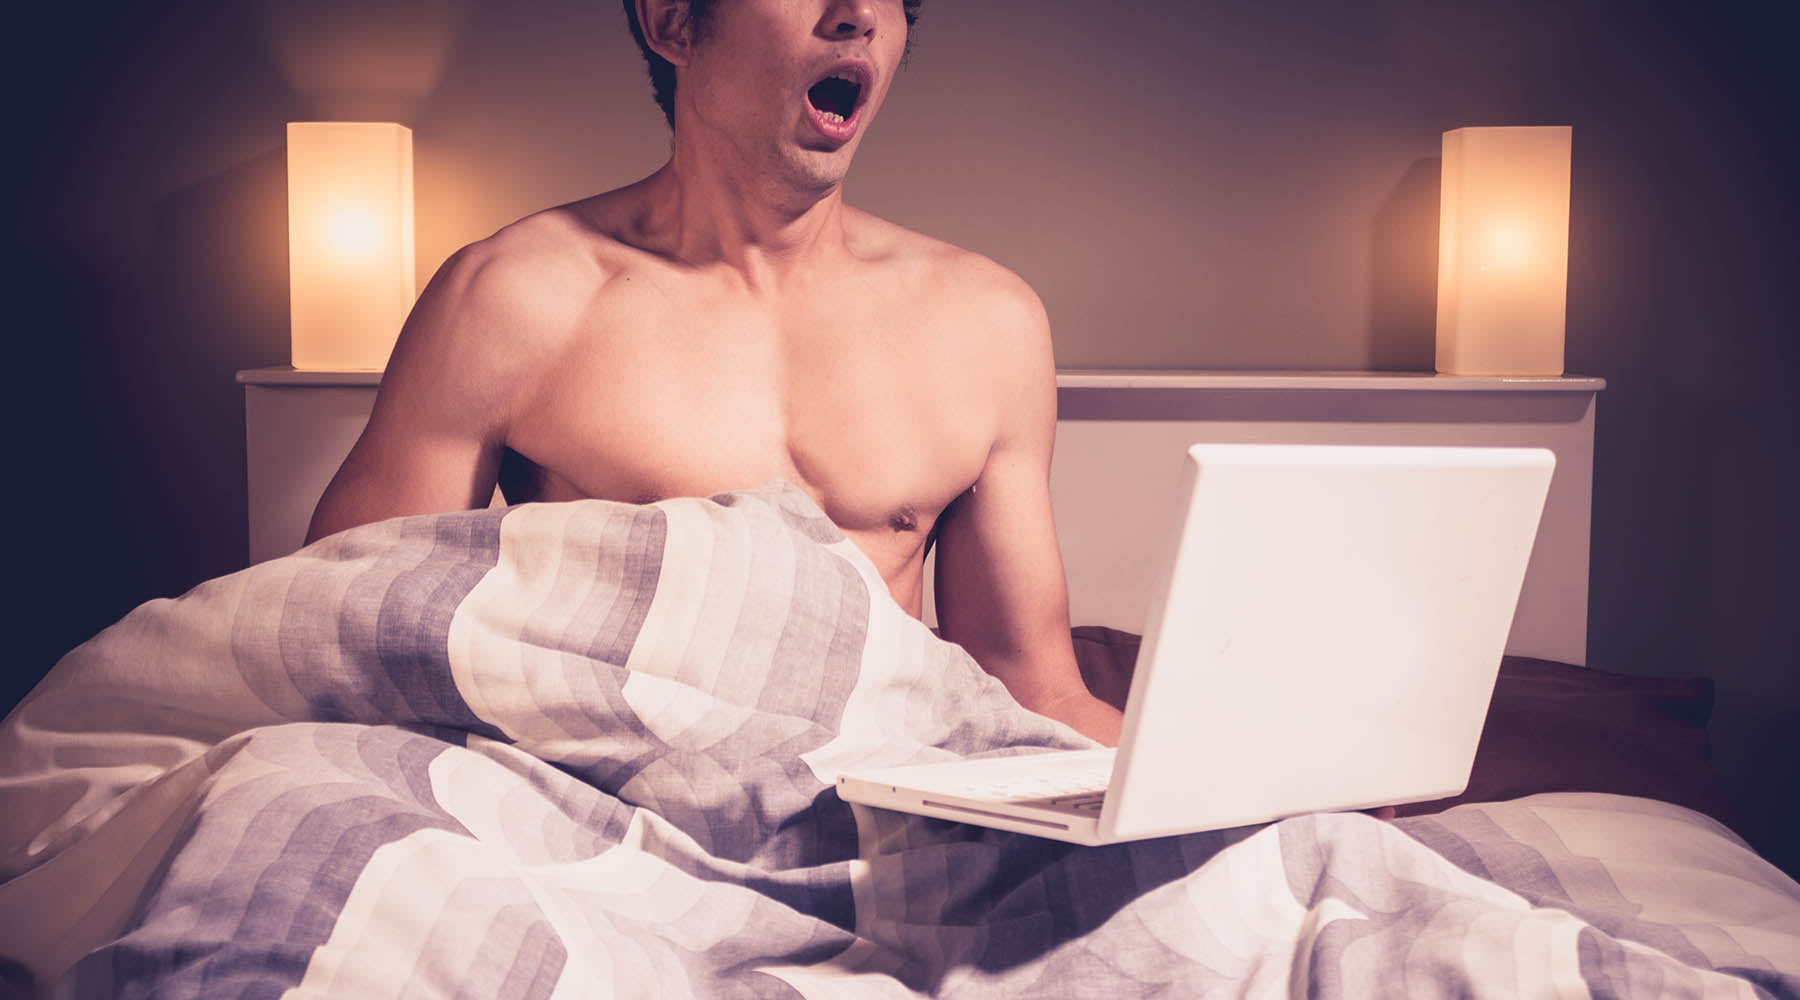 Shirtless man in bed with laptop that could benefit from masturbation training